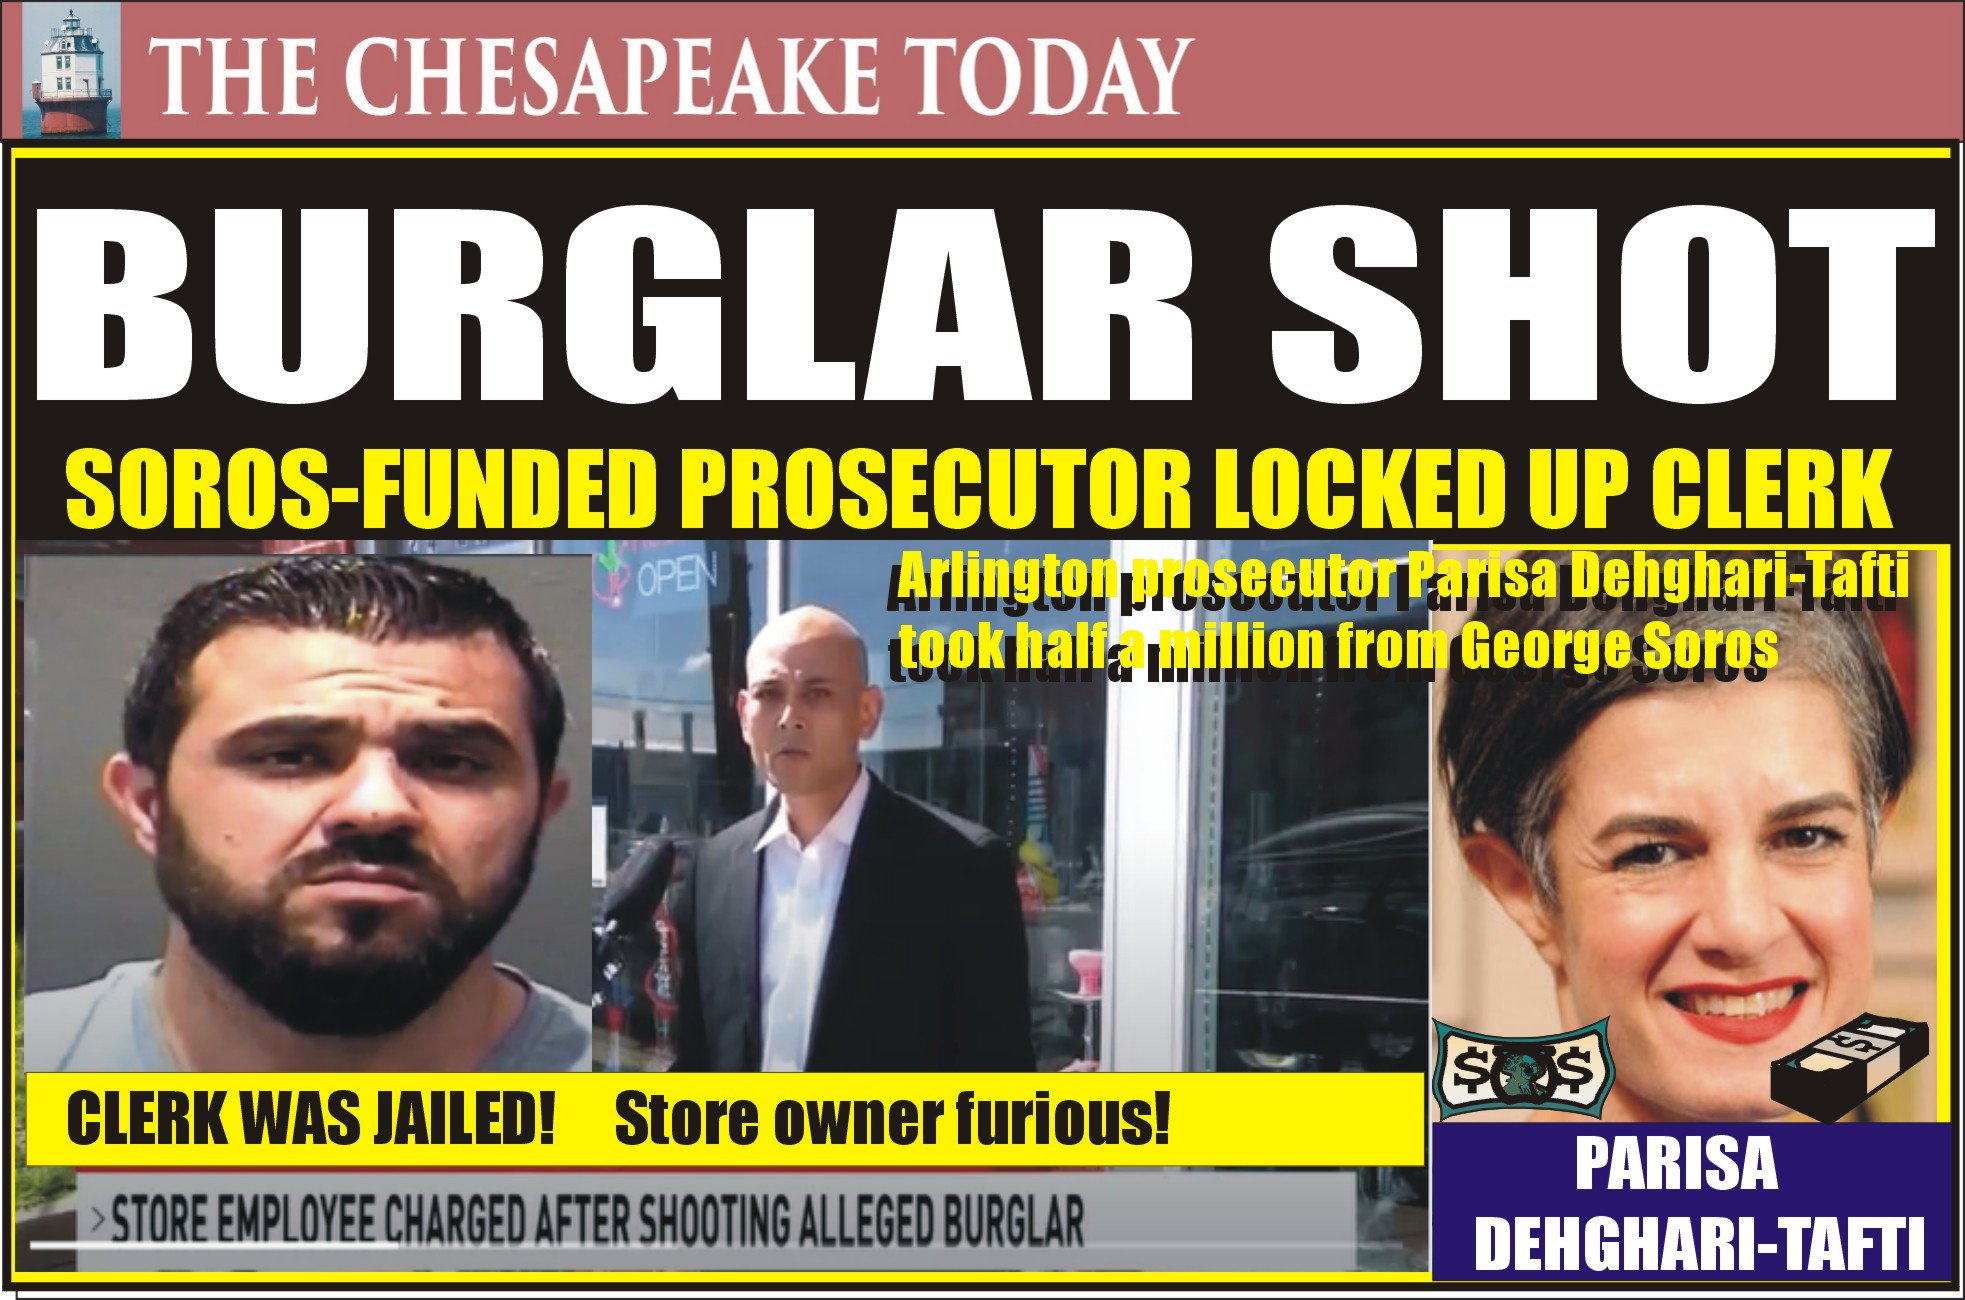 DIRTBAG ROUNDUP: Burglars broke into Arlington Smoke Shop in middle of the night, clerk shot one, Arlington County's Leftist Prosecutor, Funded by George Soros, locked up the clerk